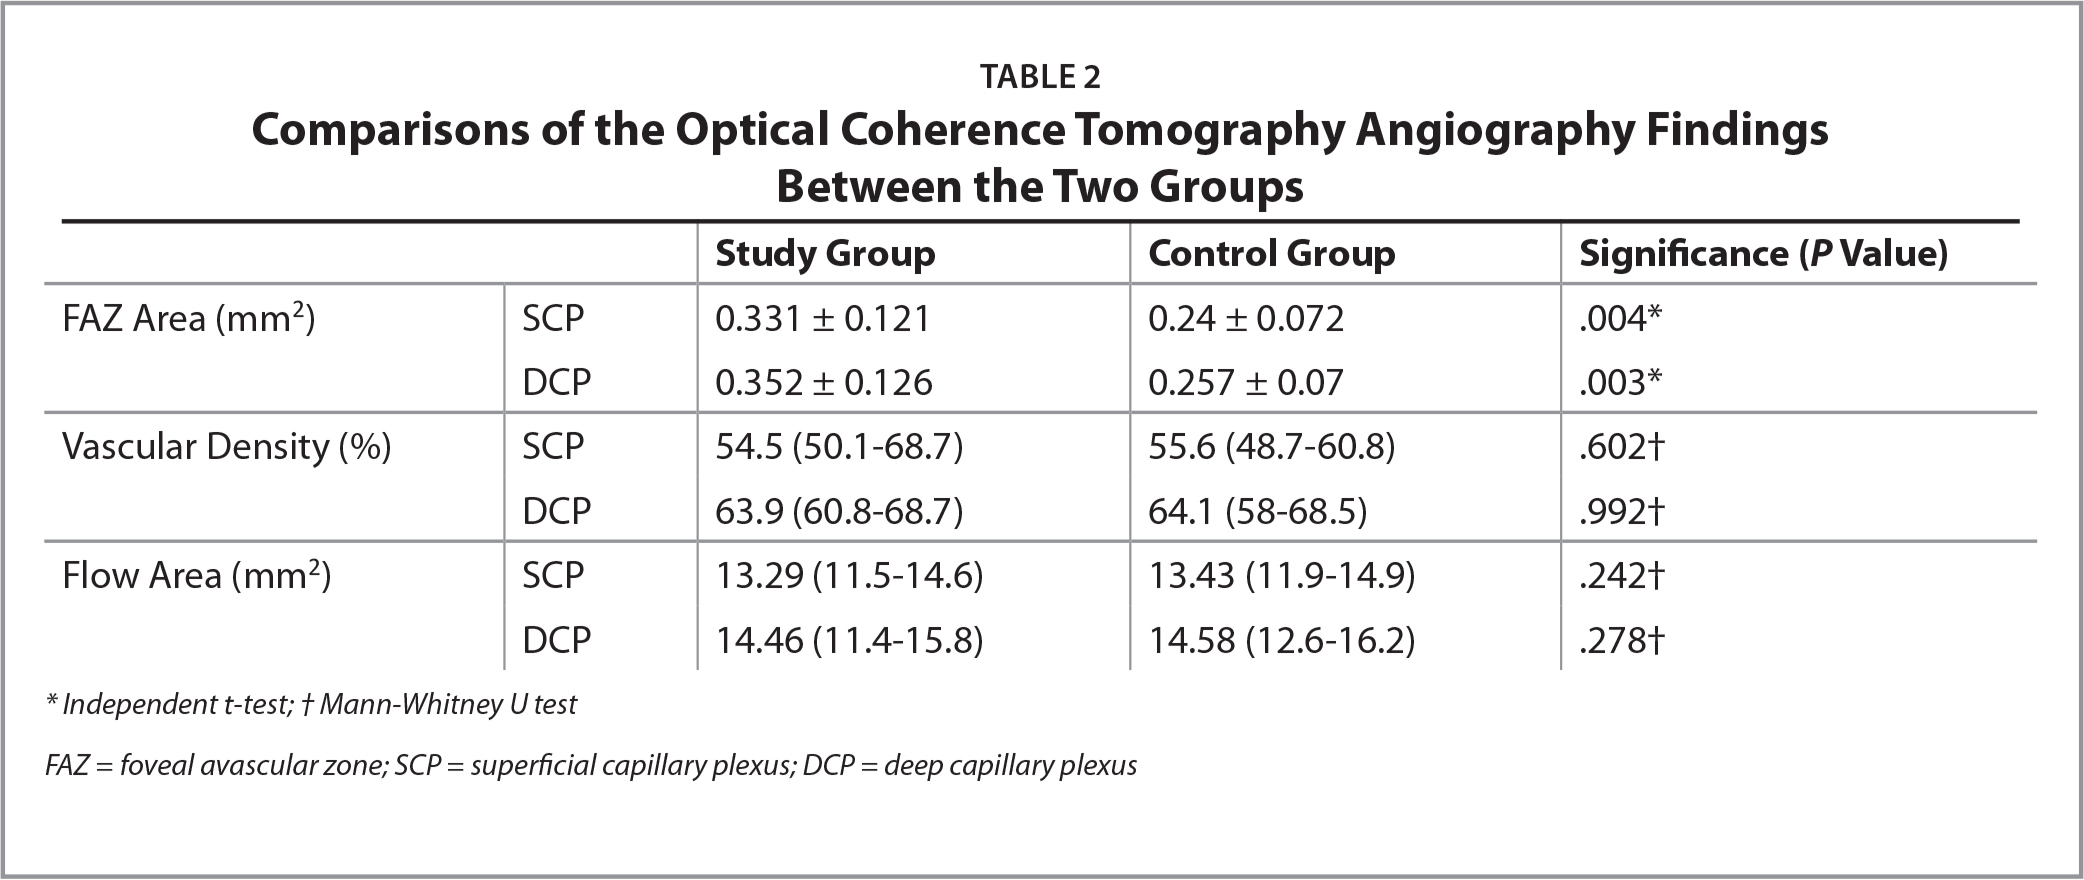 Comparisons of the Optical Coherence Tomography Angiography FindingsBetween the Two Groups